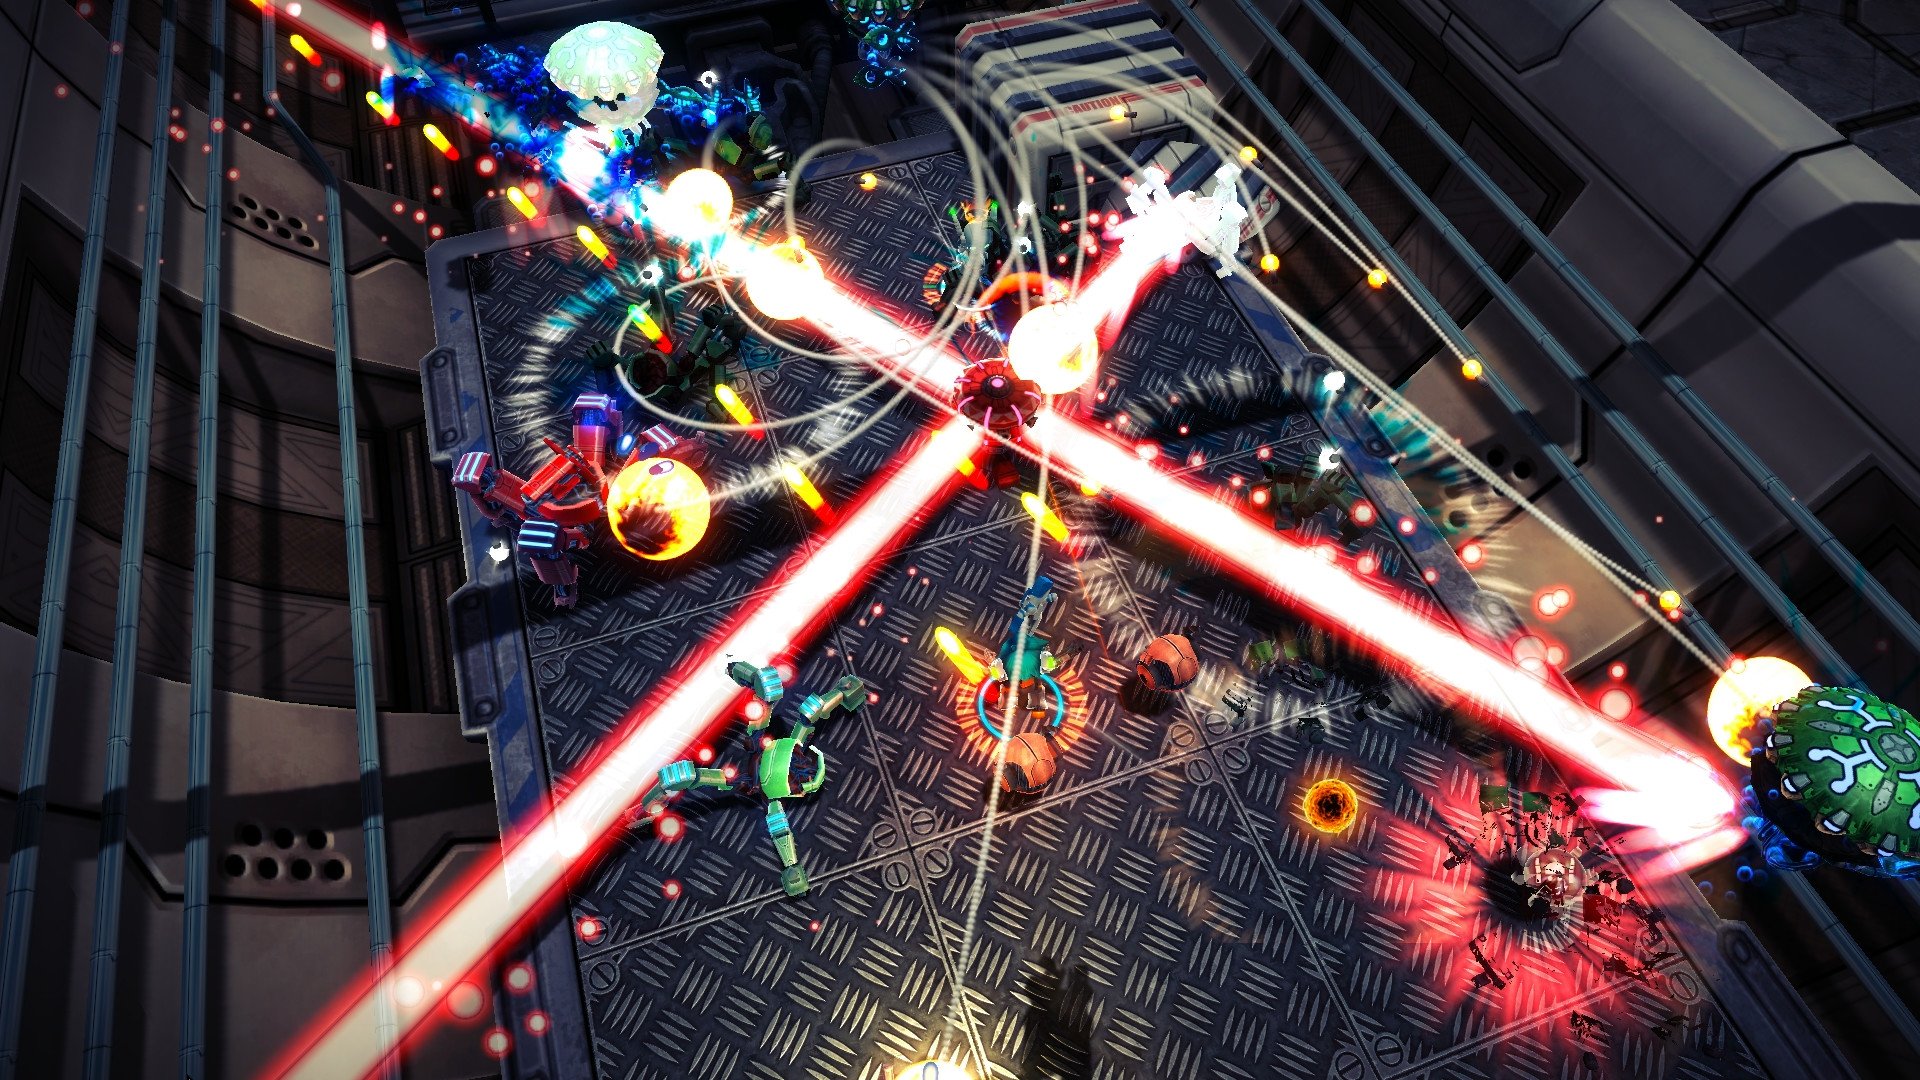 A screenshot from Assault Android Cactus showing its variation on an arena shooter stalwart environmental enemy - the 4 way laser beam. The player fights robots in-between the beams. Given how aggressively red and purest all engulfing white the beams are, probably best not to get hit by them because ouch.